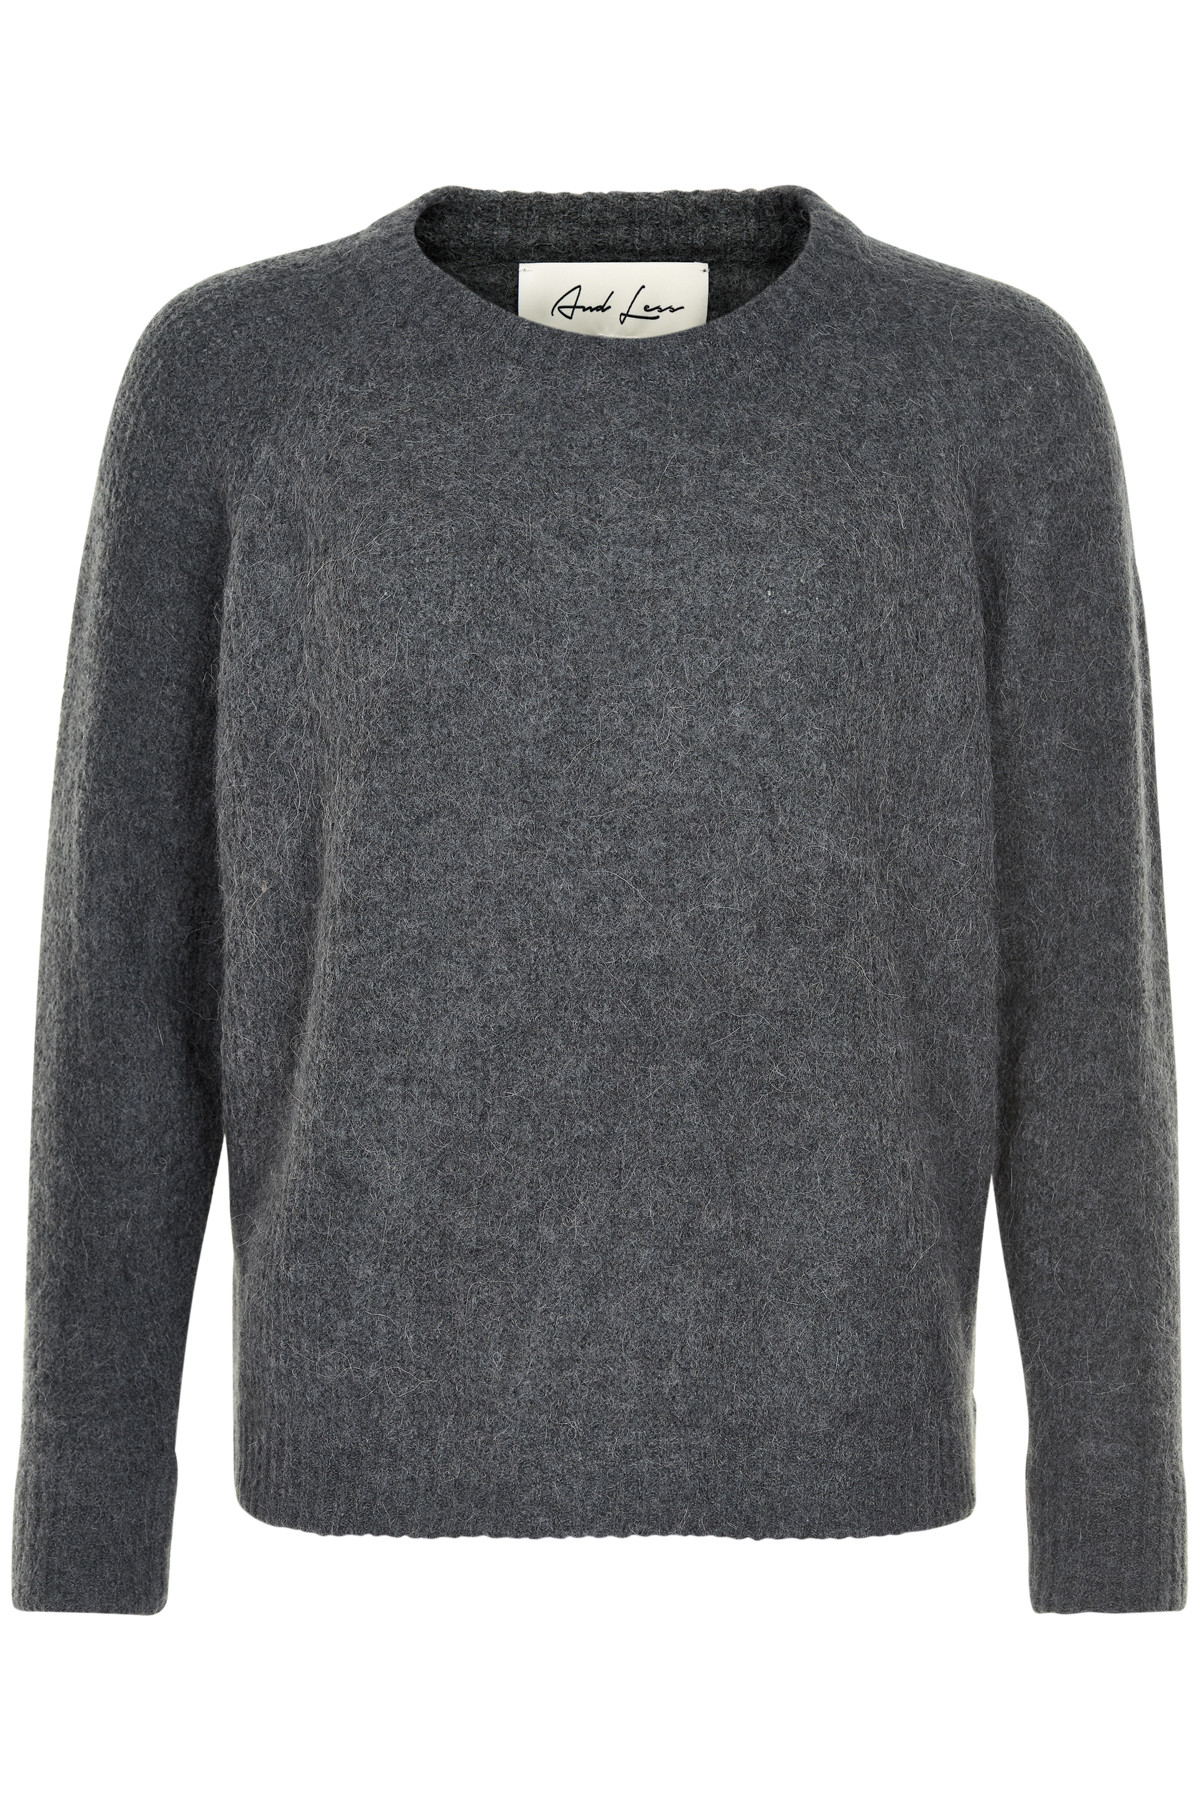 Image of   AND LESS ALBAMBINA SWEATER 5519211 F (Folkstone, XS)